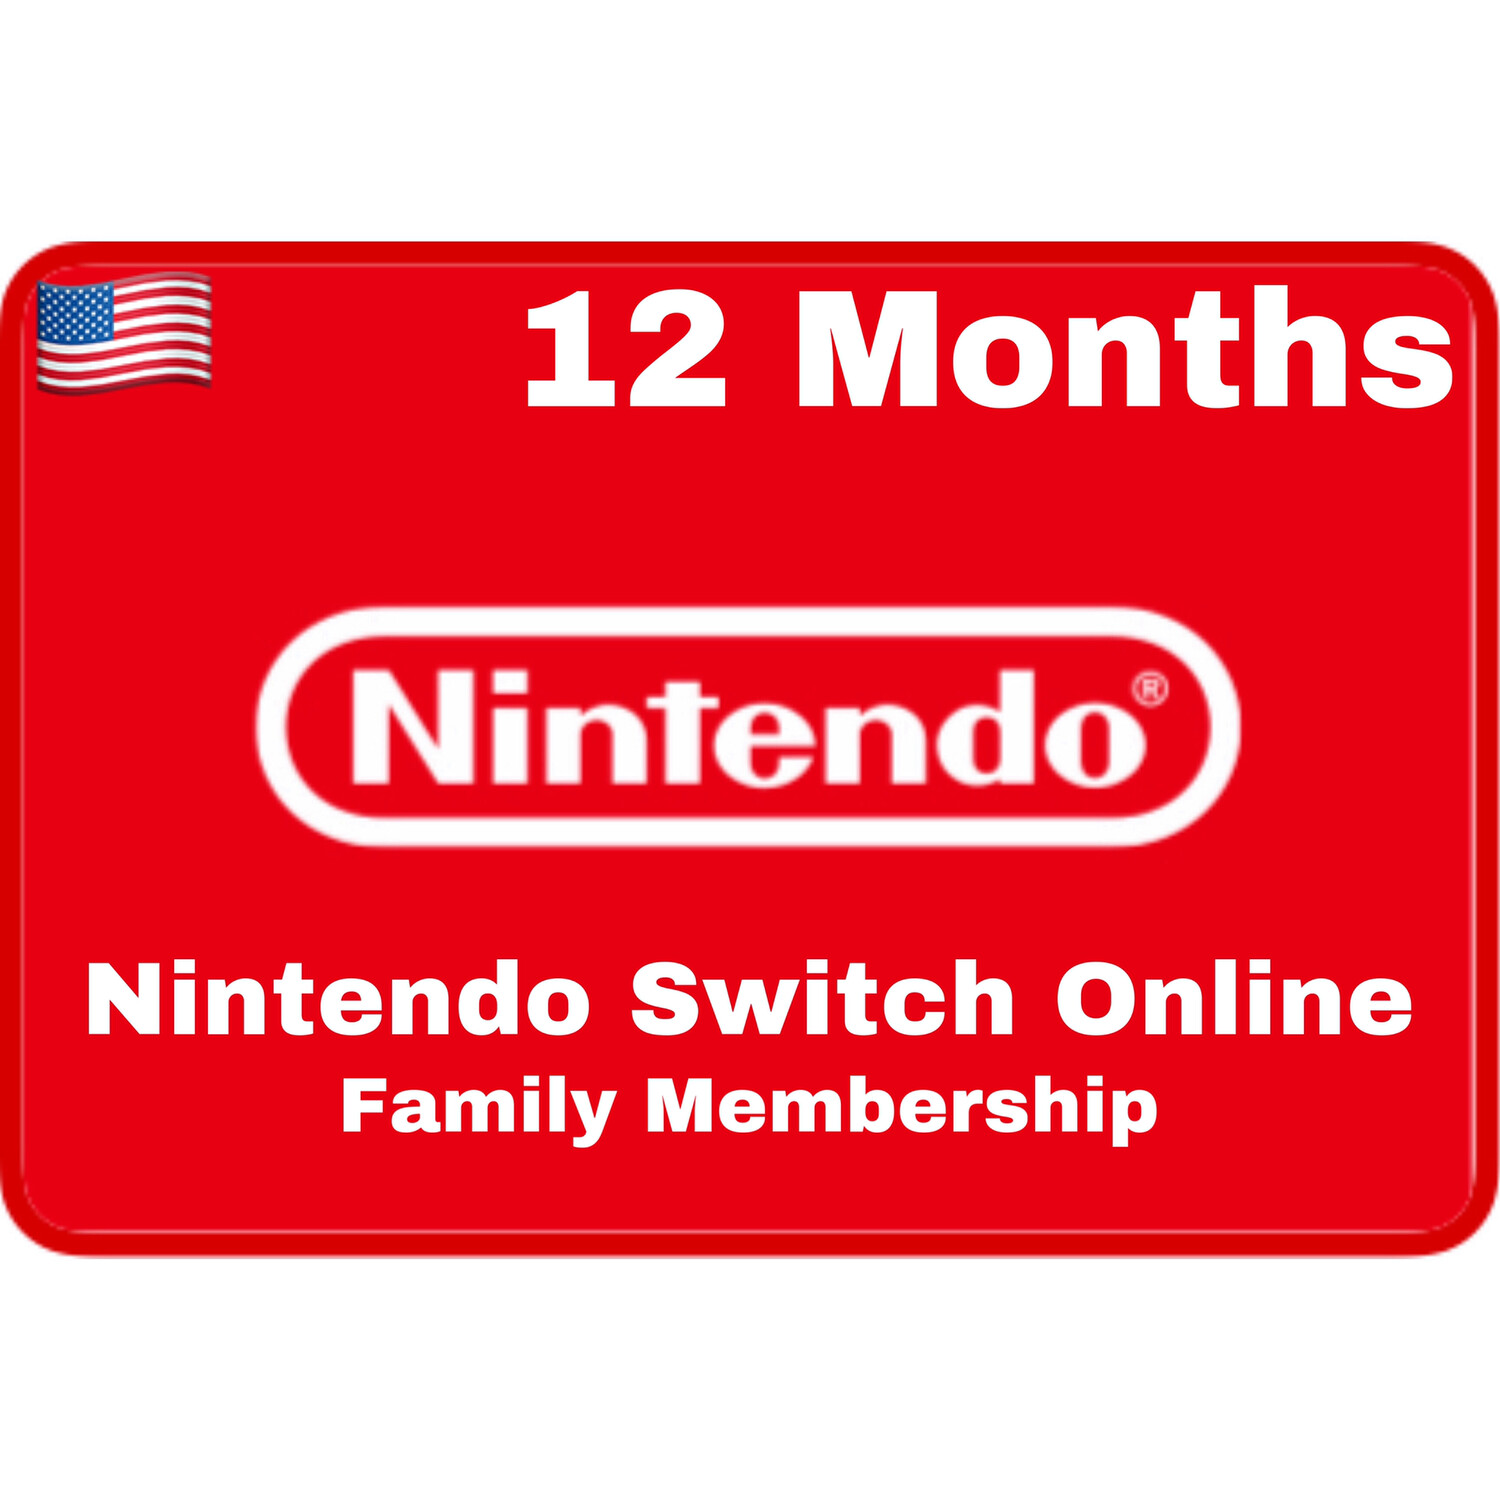 Nintendo Switch Online 12 Months USA Family Membership